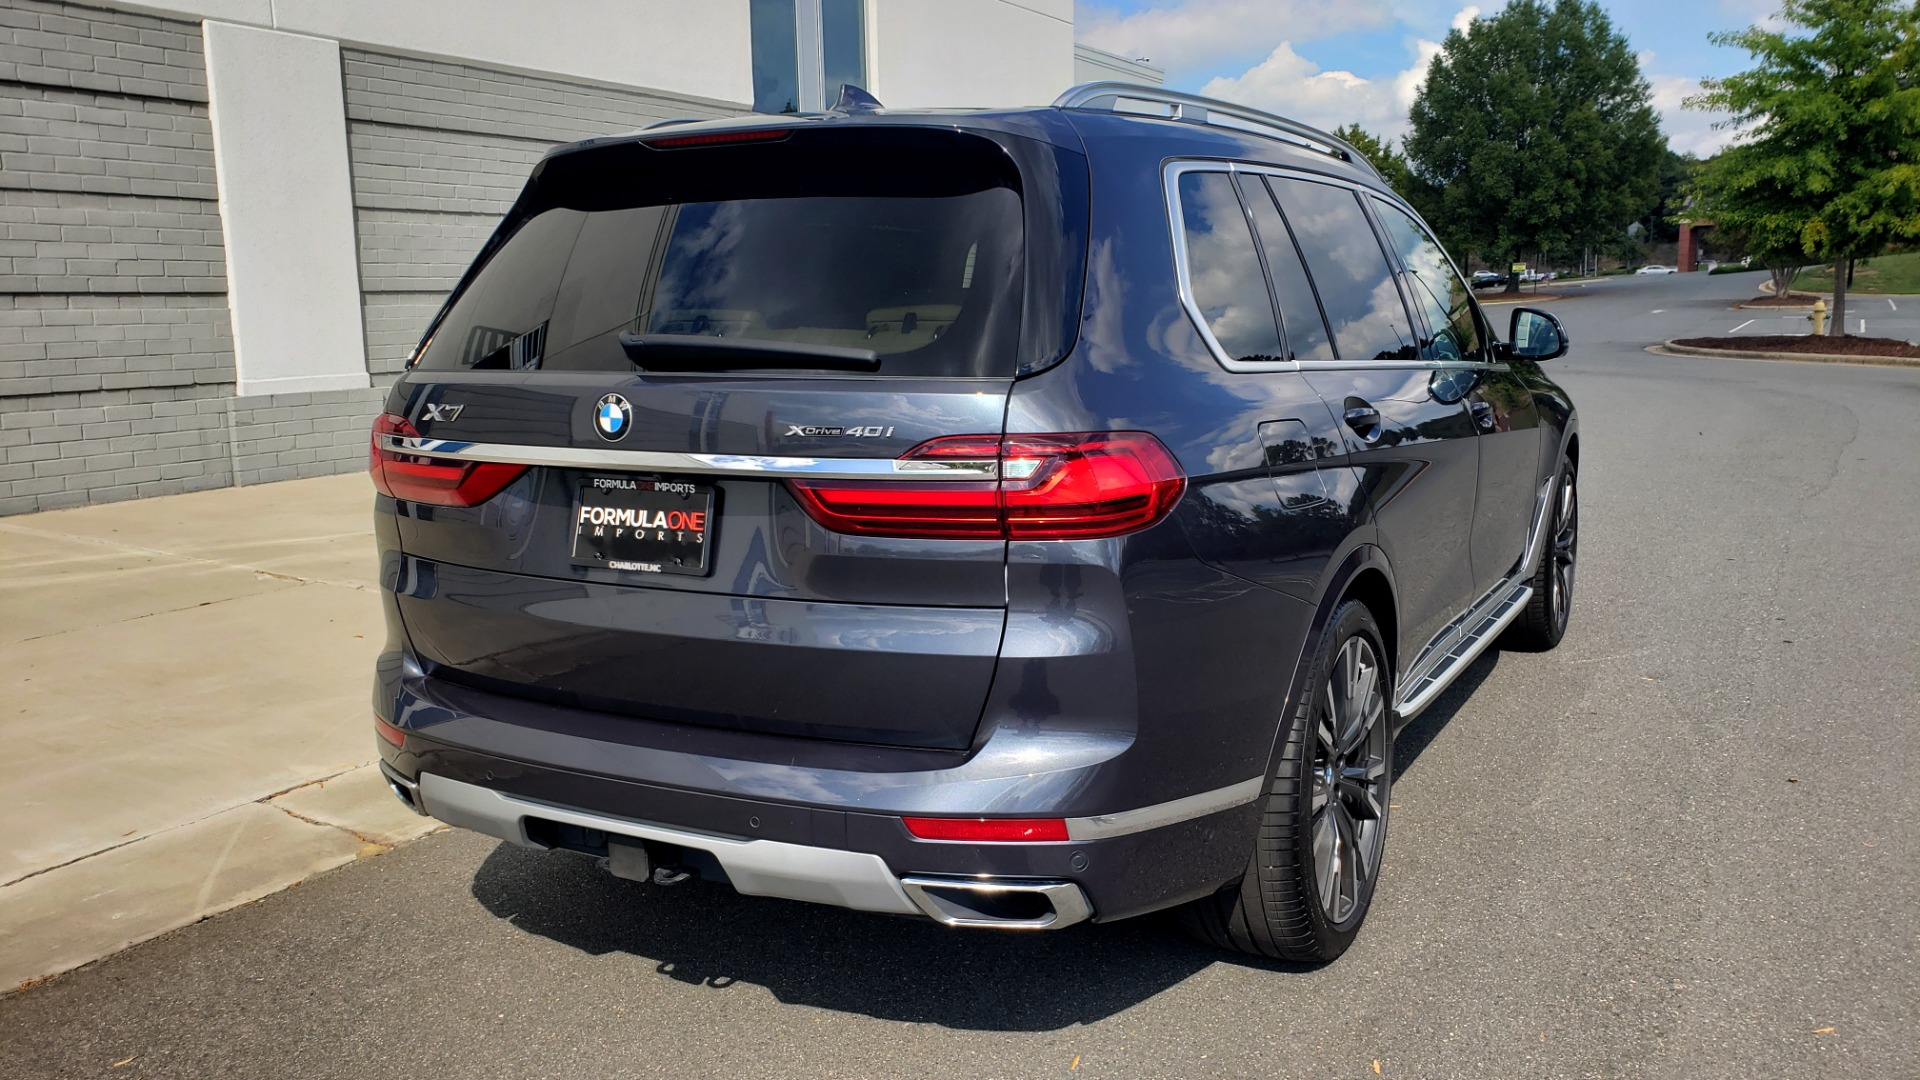 Used 2019 BMW X7 XDRIVE40I PREMIUM / LUXURY / COLD WEATHER / PARK ASST / PANORAMIC SKY / TOW for sale $75,999 at Formula Imports in Charlotte NC 28227 6